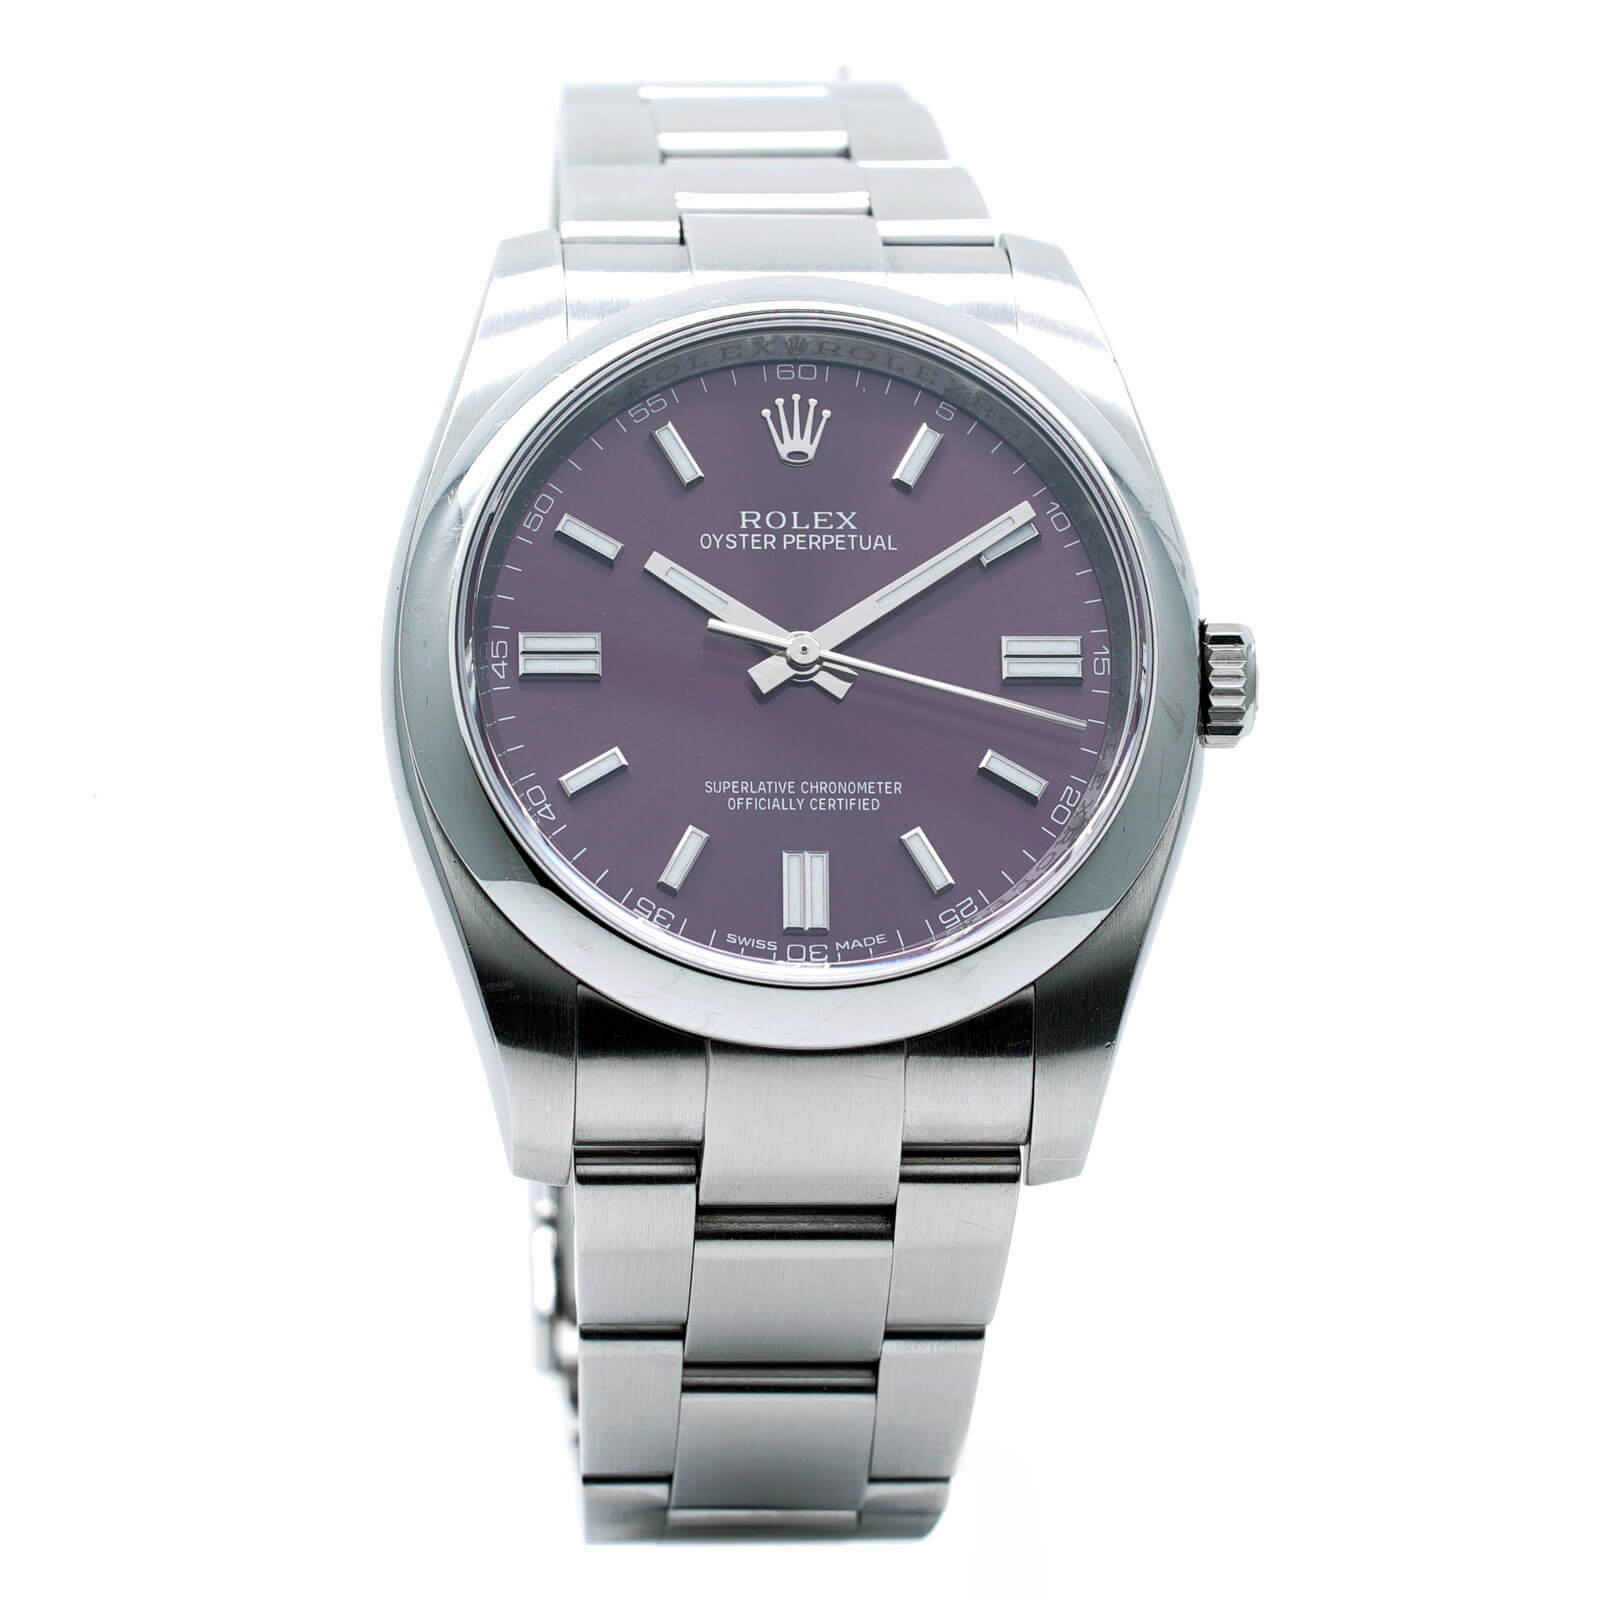 0129aea488773 Montre-Rolex-Oyster-Perpetual-occaison-Lionel-Meylan-Horlogerie-